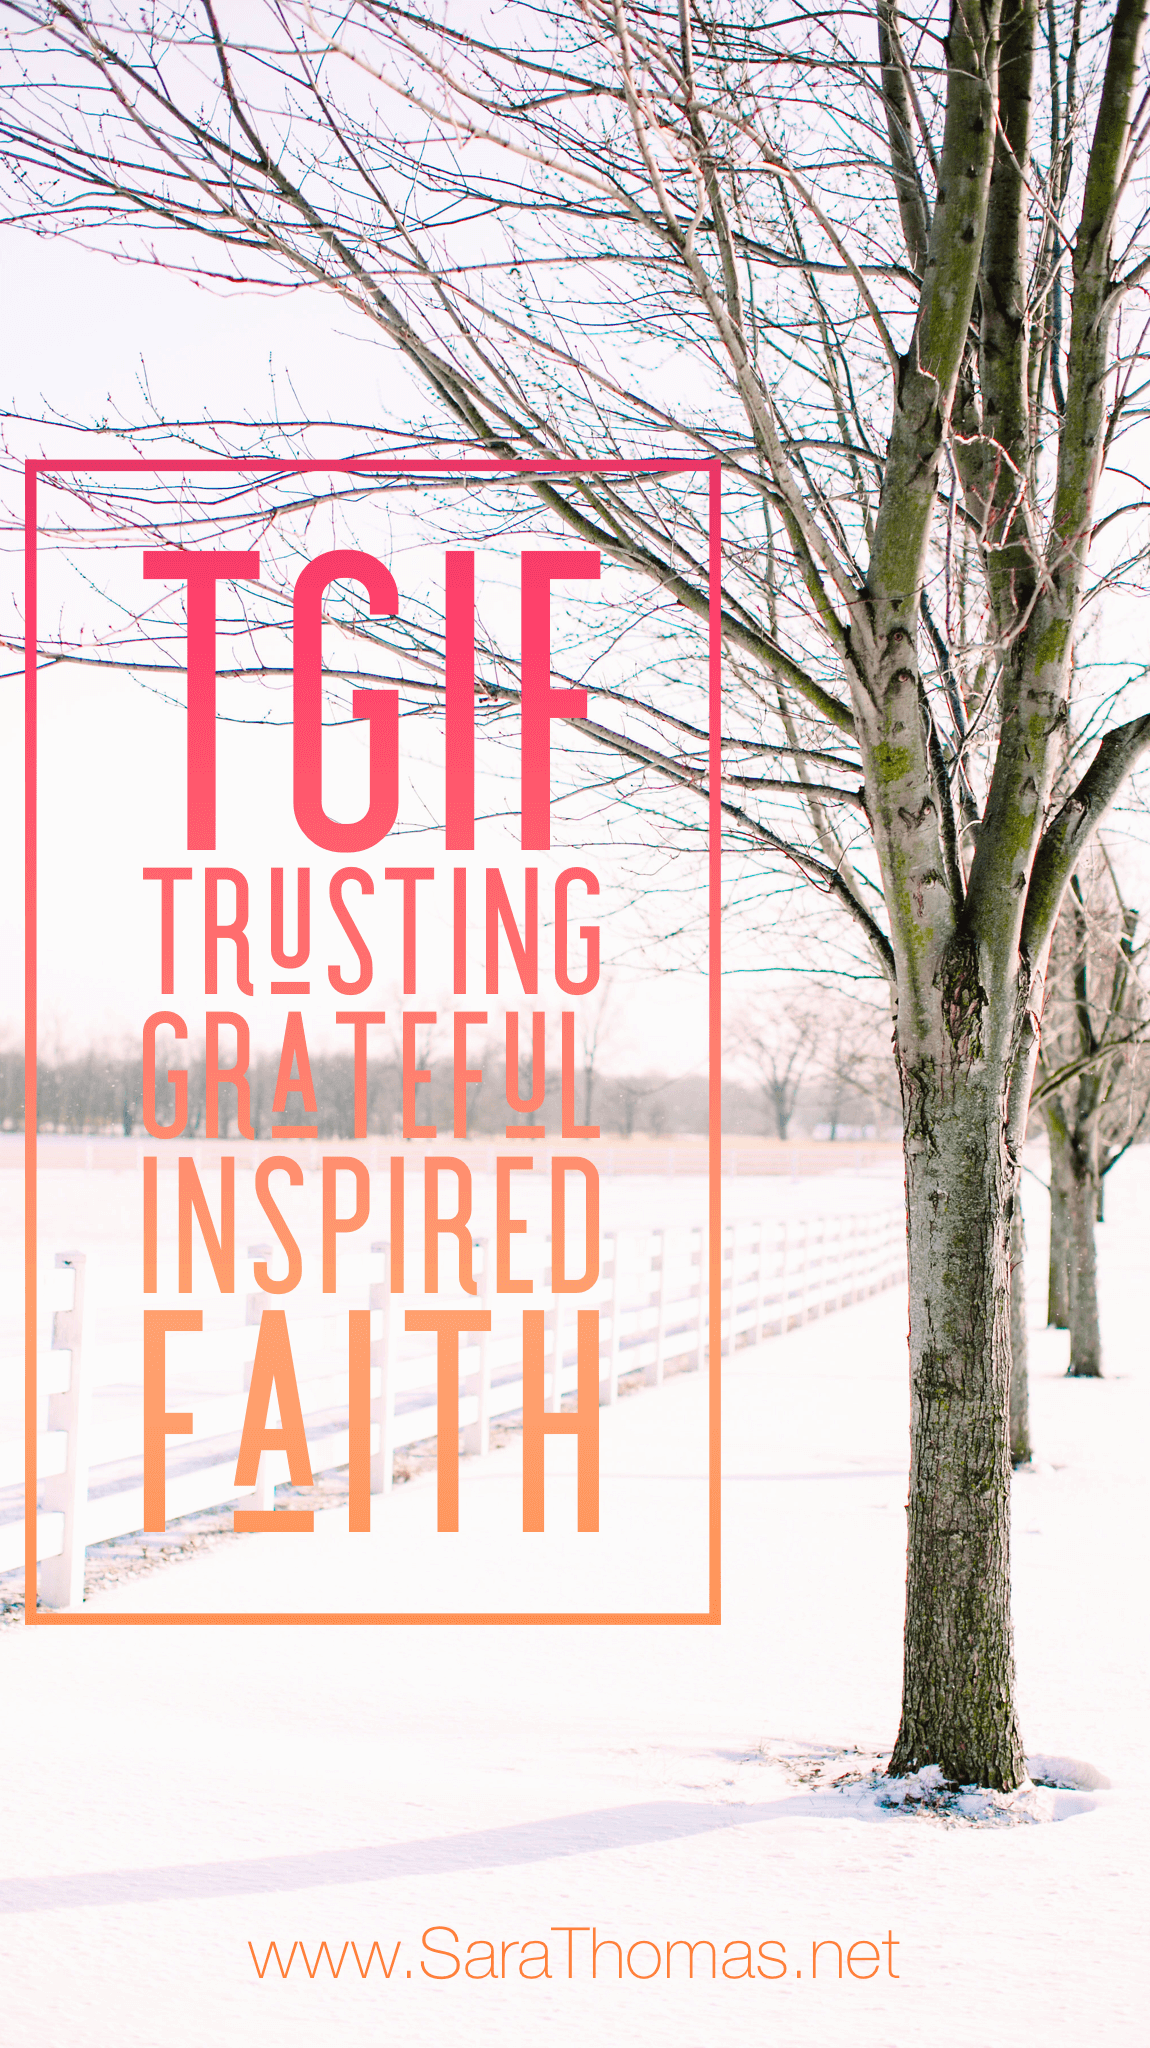 Trust. Gratitude. Inspiration. Faith. Here are four questions I'm exploring every week to stay focused on what matters the most. #trust #gratitude #inspiration #faith Sara Thomas